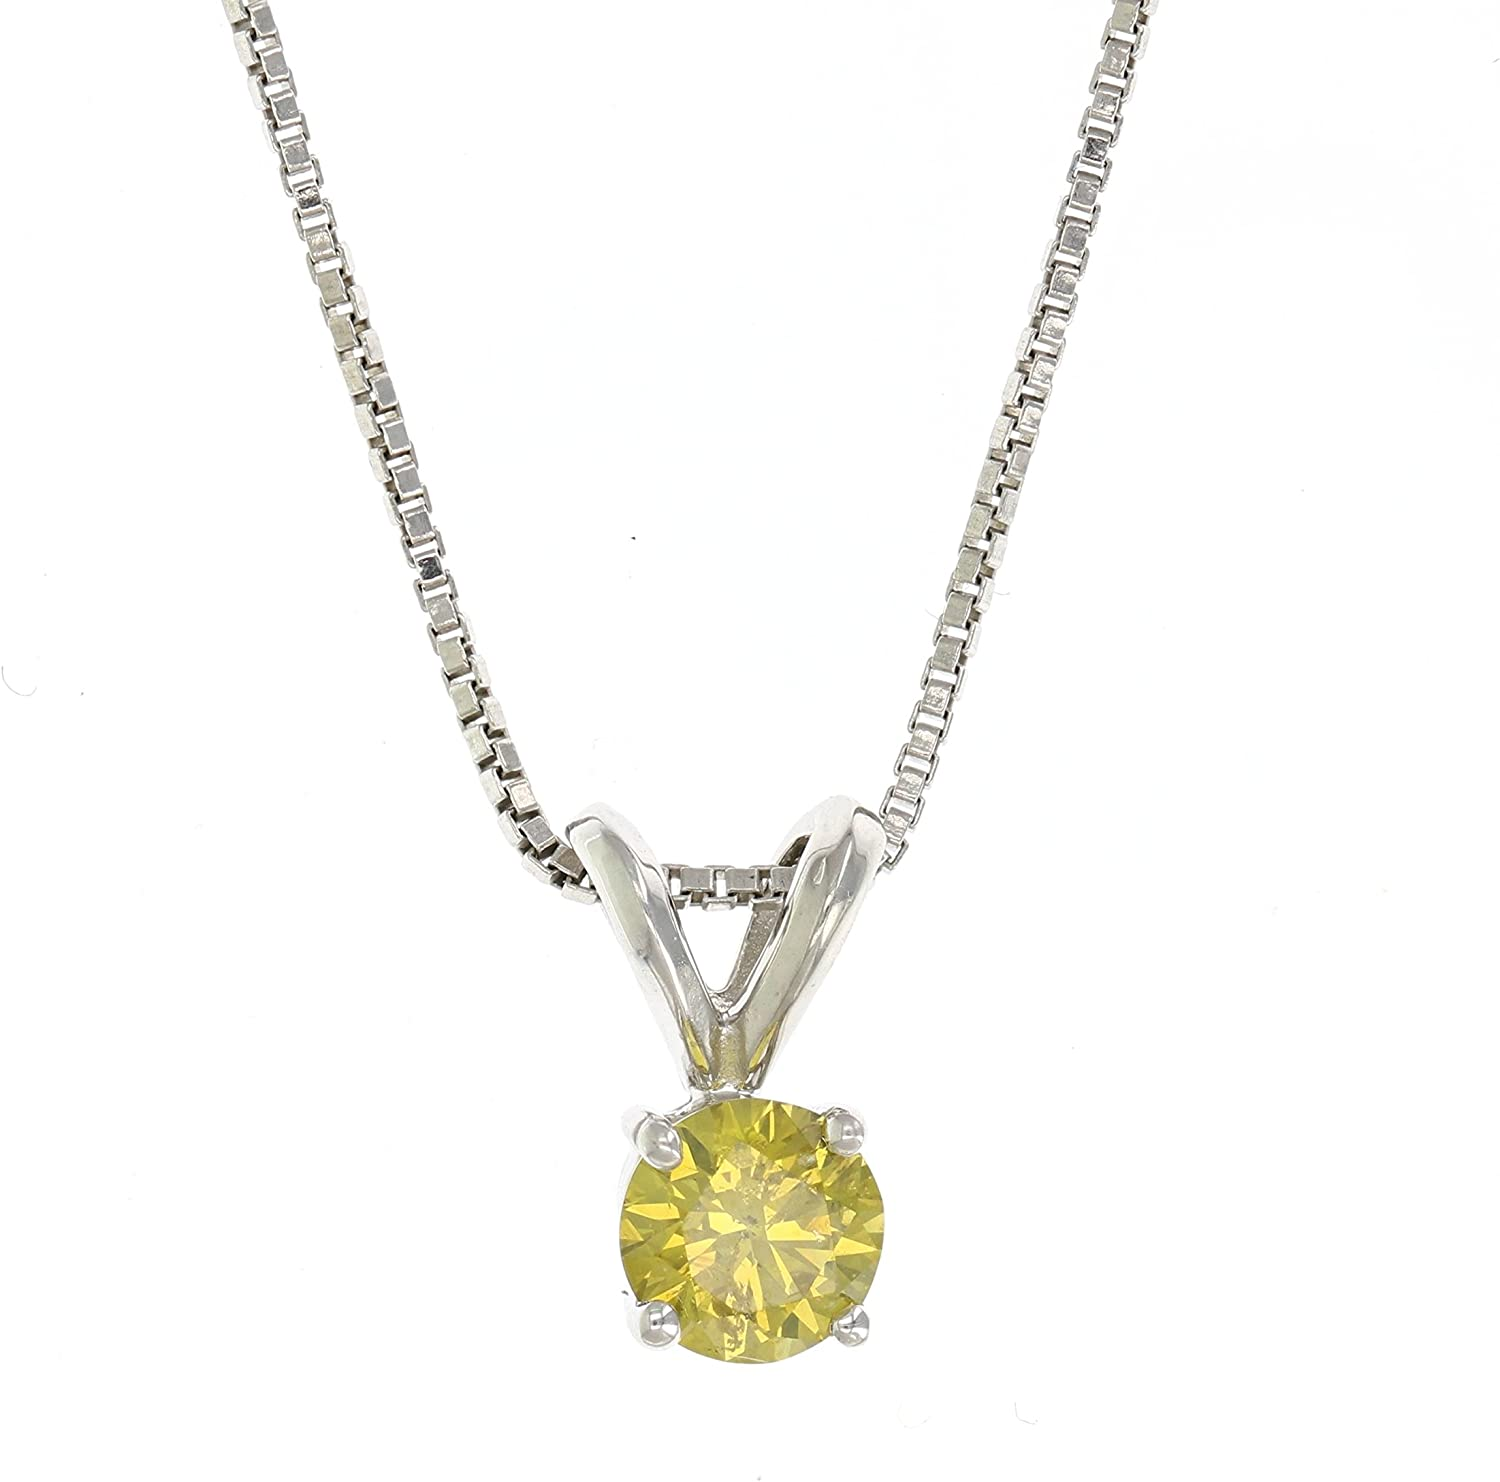 Vir Jewels 1//4 cttw Yellow Diamond Solitaire Pendant Necklace 14K White Gold